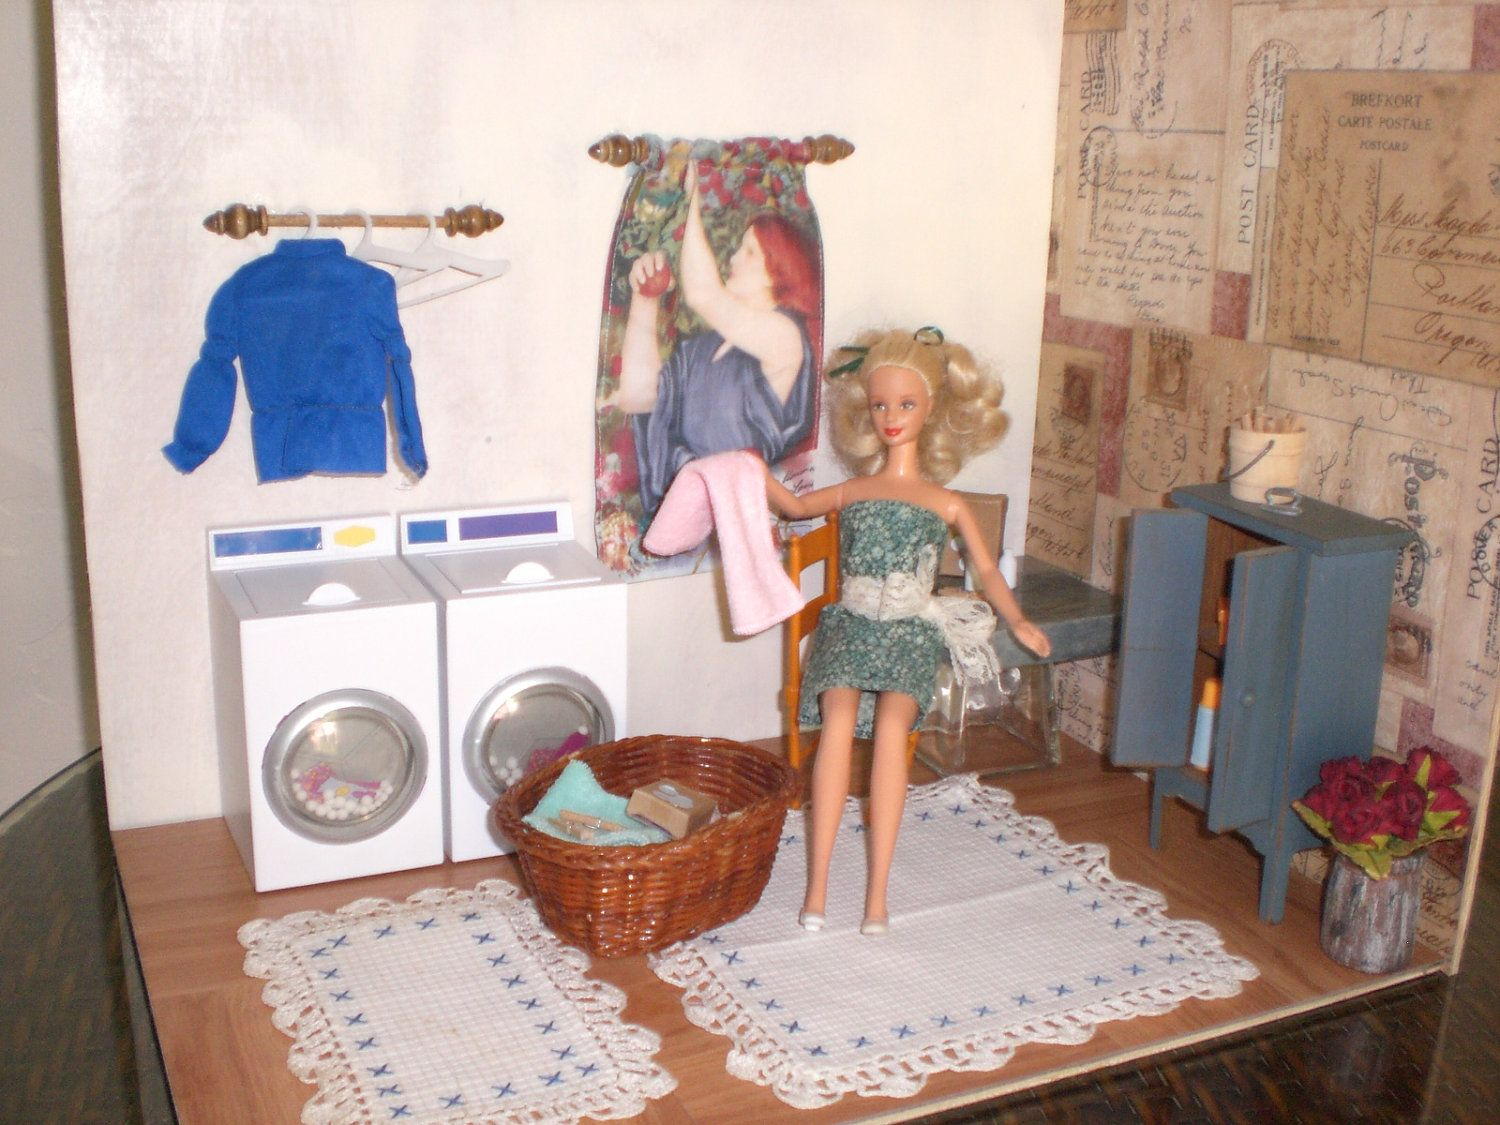 Barbie Bedroom In A Box: Barbie Doll House LAUNDRY ROOM